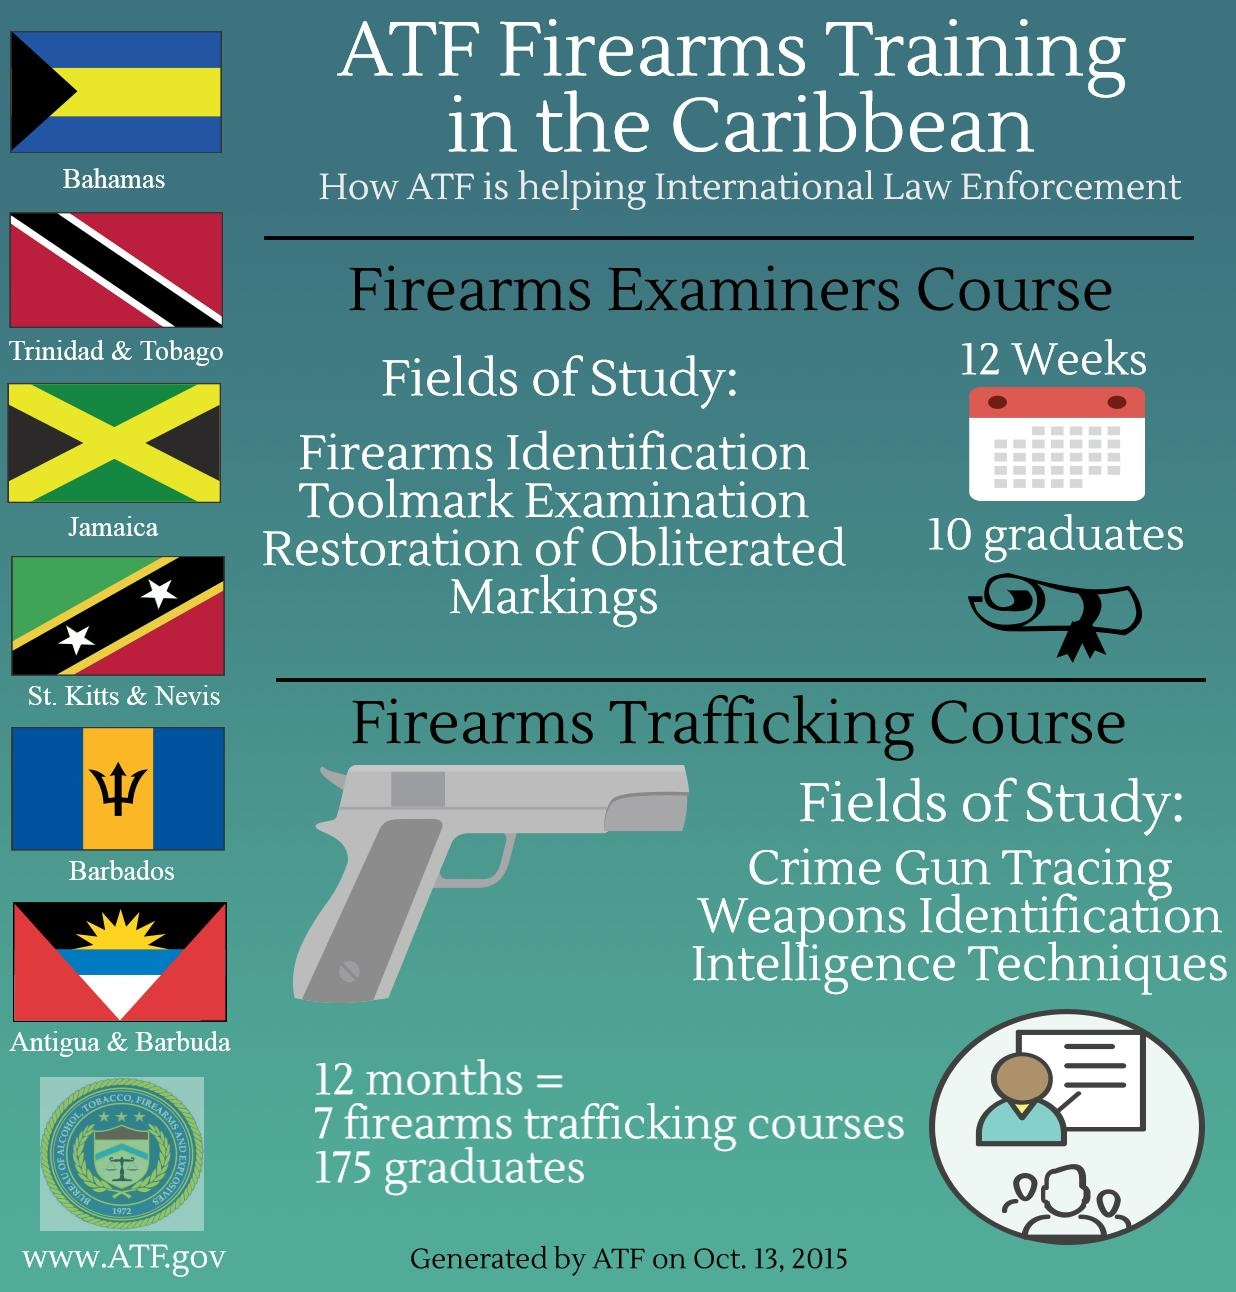 Firearms Trafficking Training in the Caribbean Image